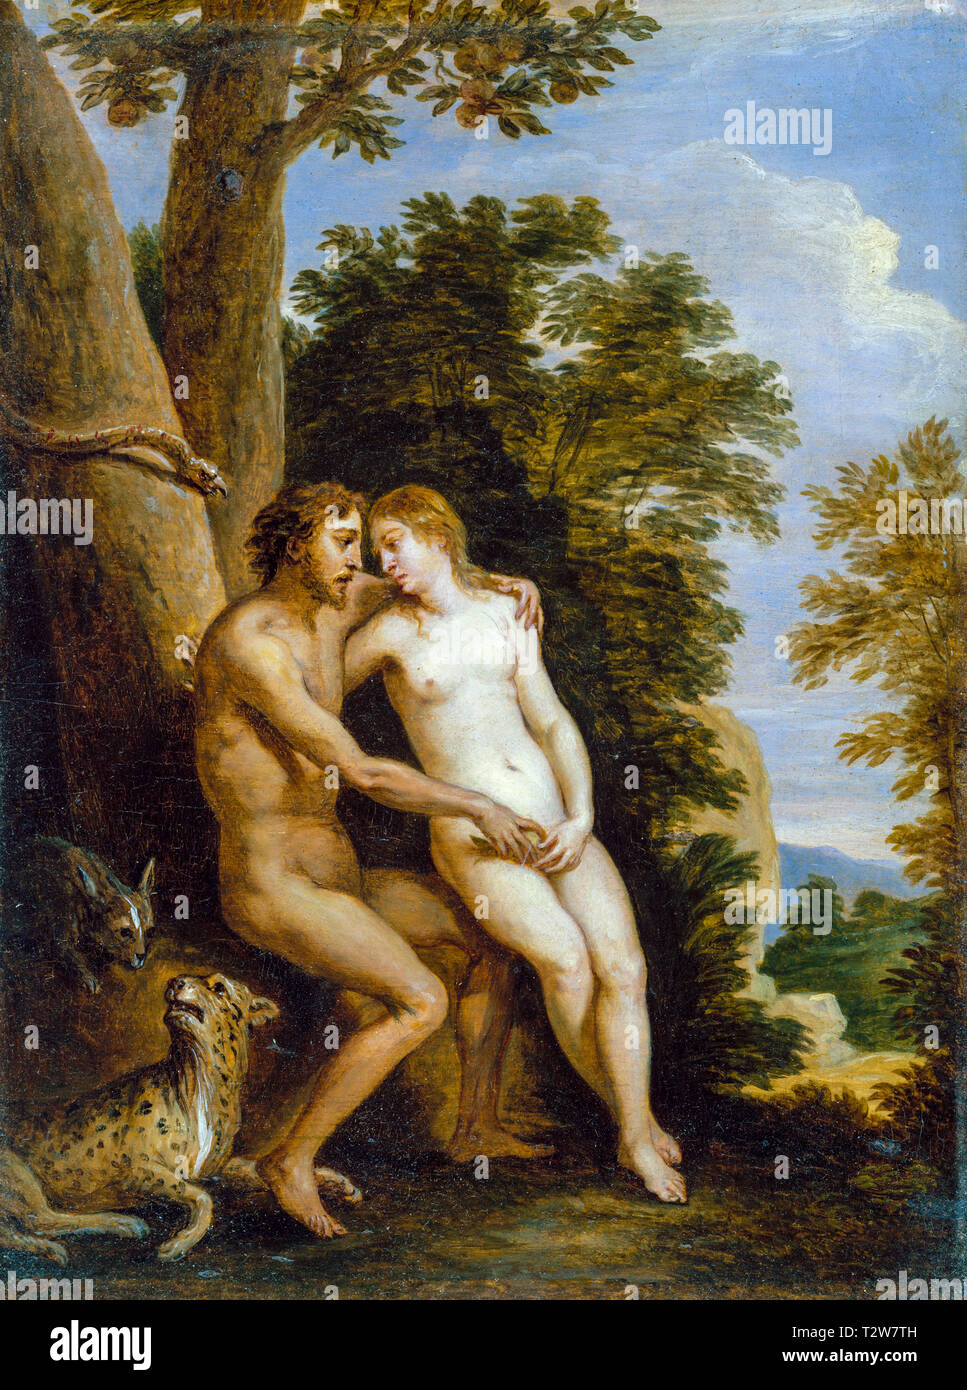 Adam and Eve in Paradise, painting by David Teniers the Younger, c. 1650s - Stock Image